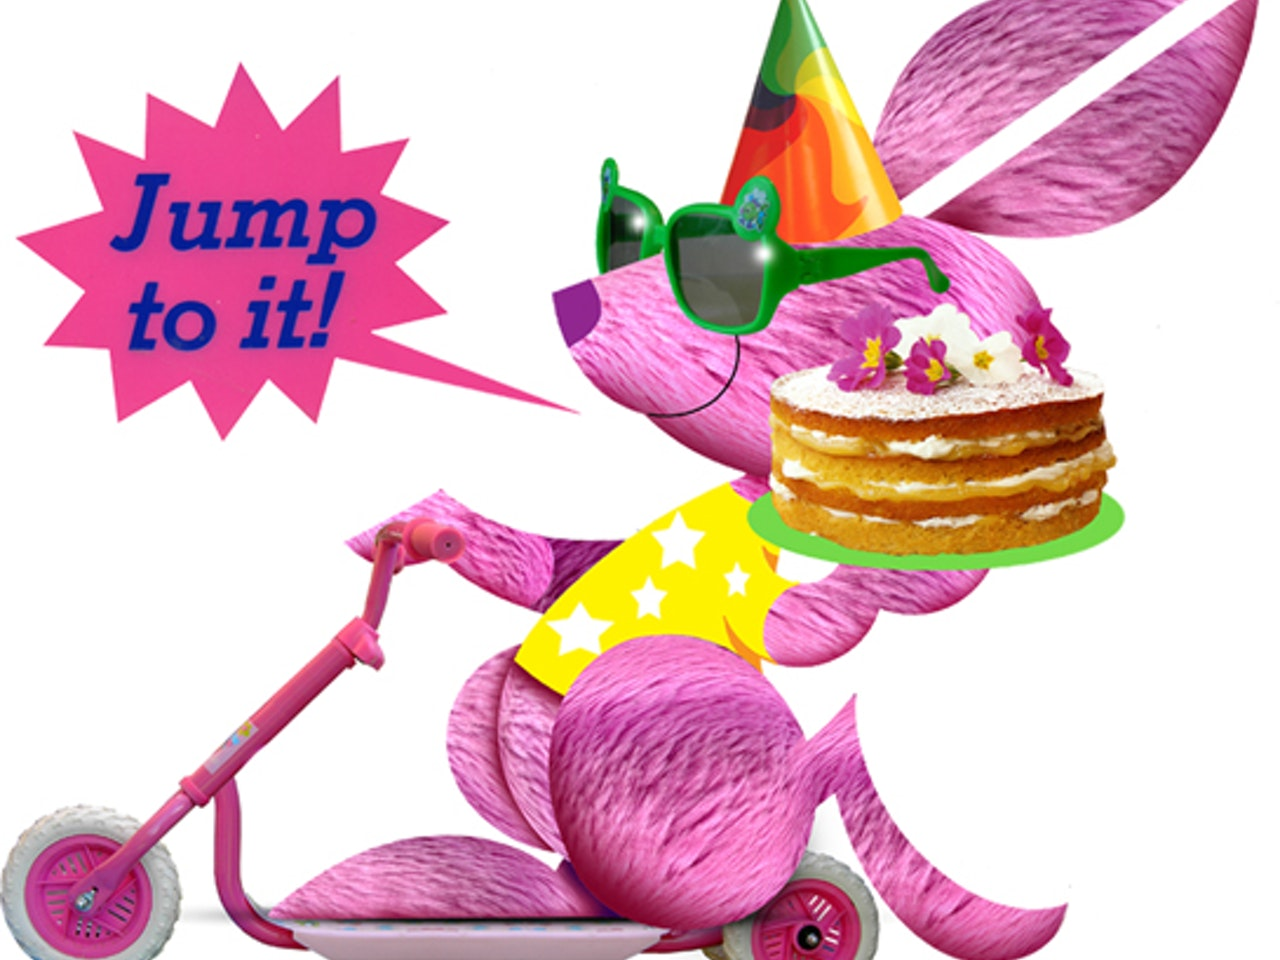 pink rabbit scooter cake party hat collage funny happy humorous comical colourful graphic illustration   retro vintage